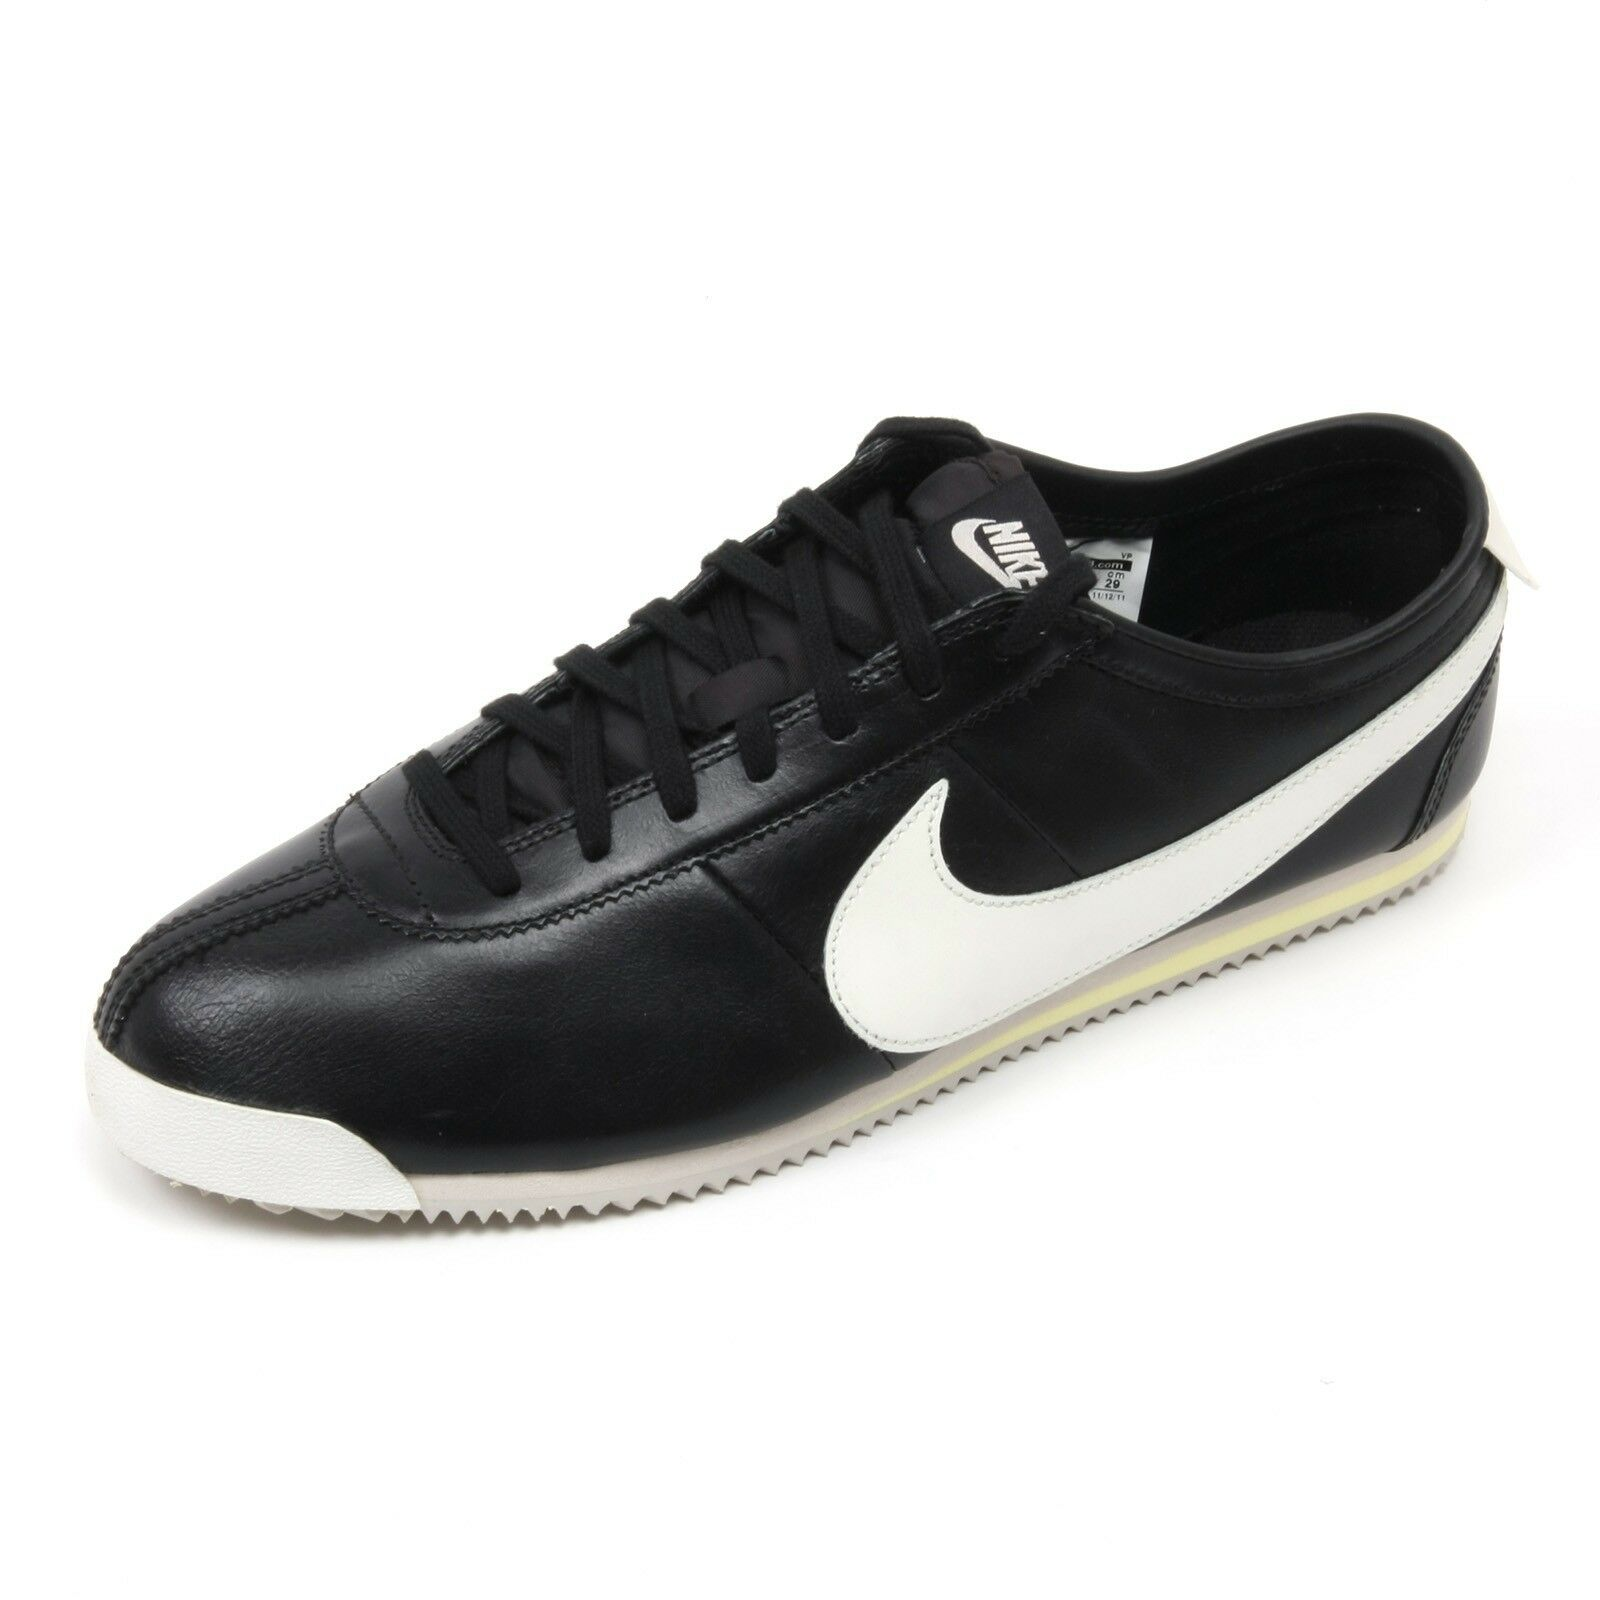 C2654 mens trainers Nike Cortez Classic OG Leather zapatos zapatos man